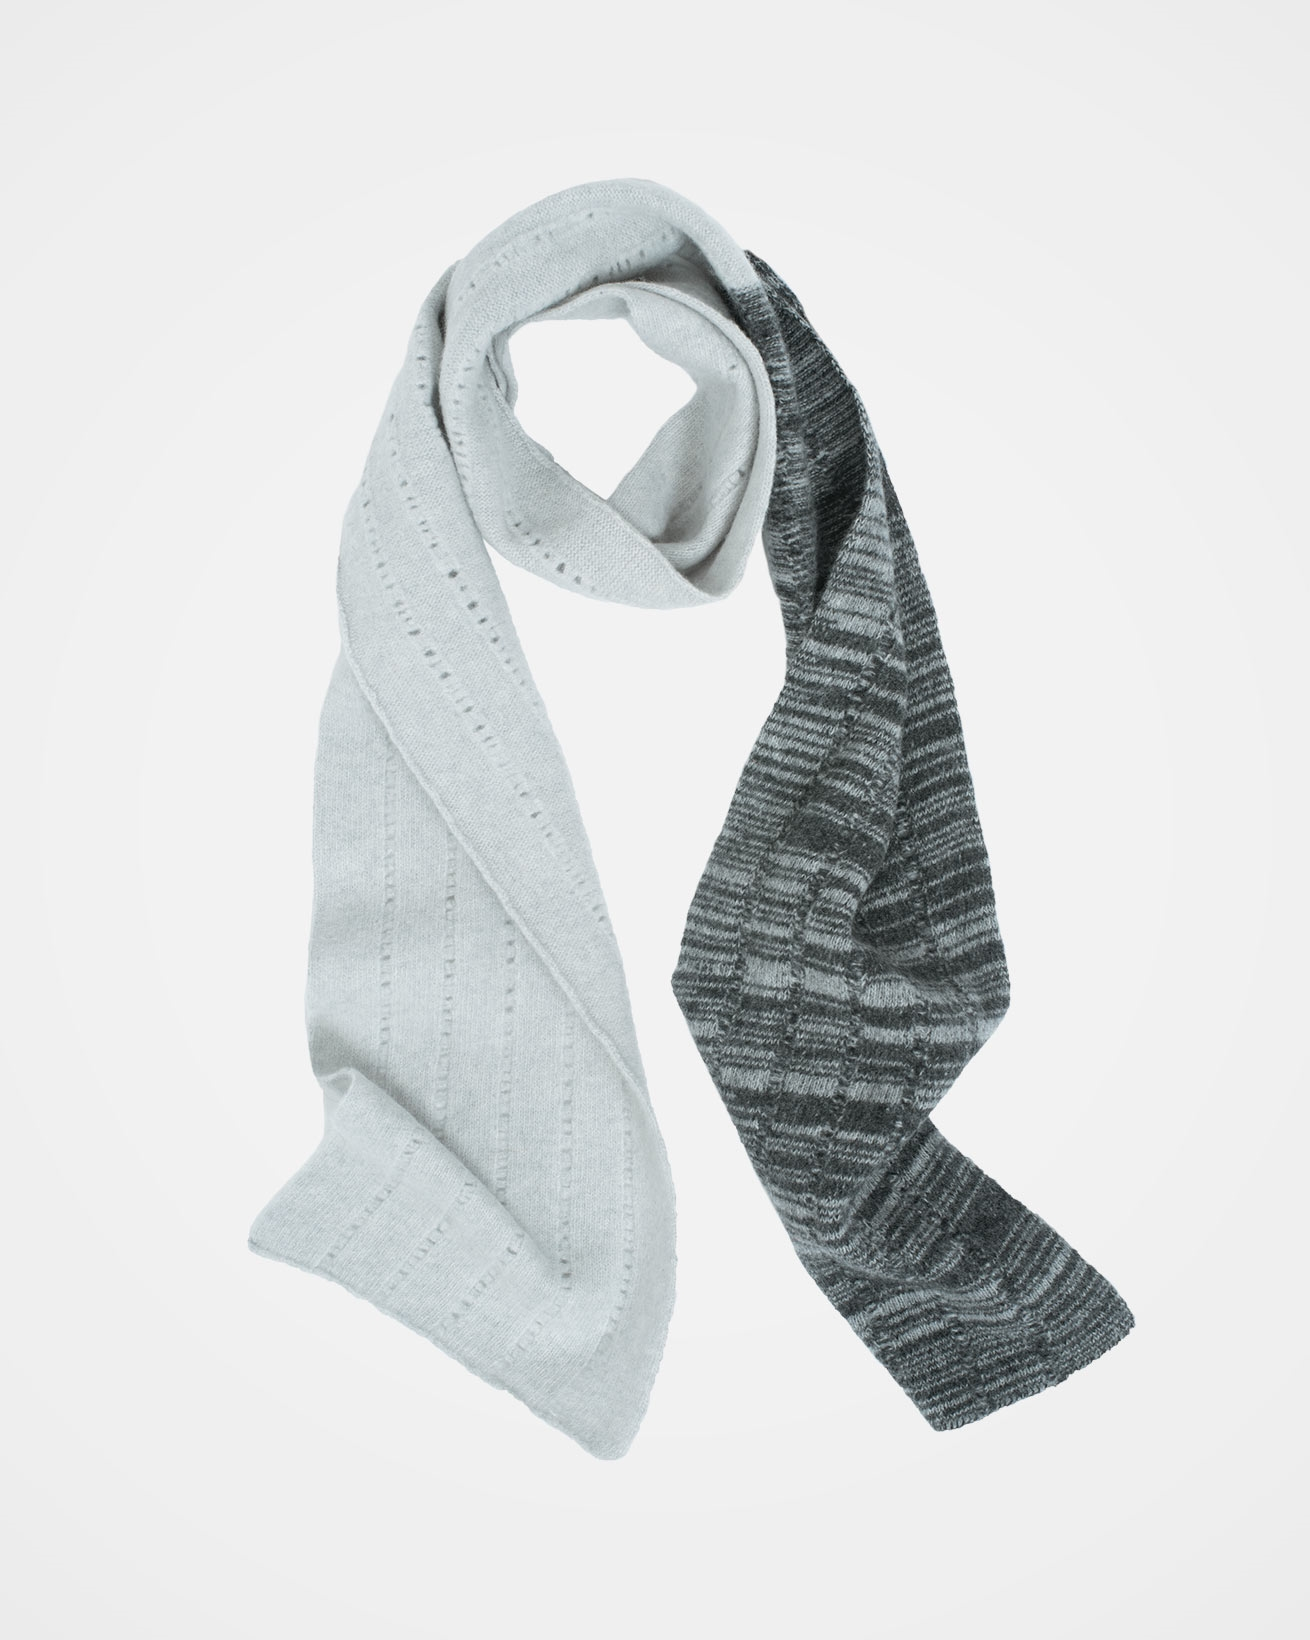 7657_grey-wool-scarf_soft-grey_swirl.jpg